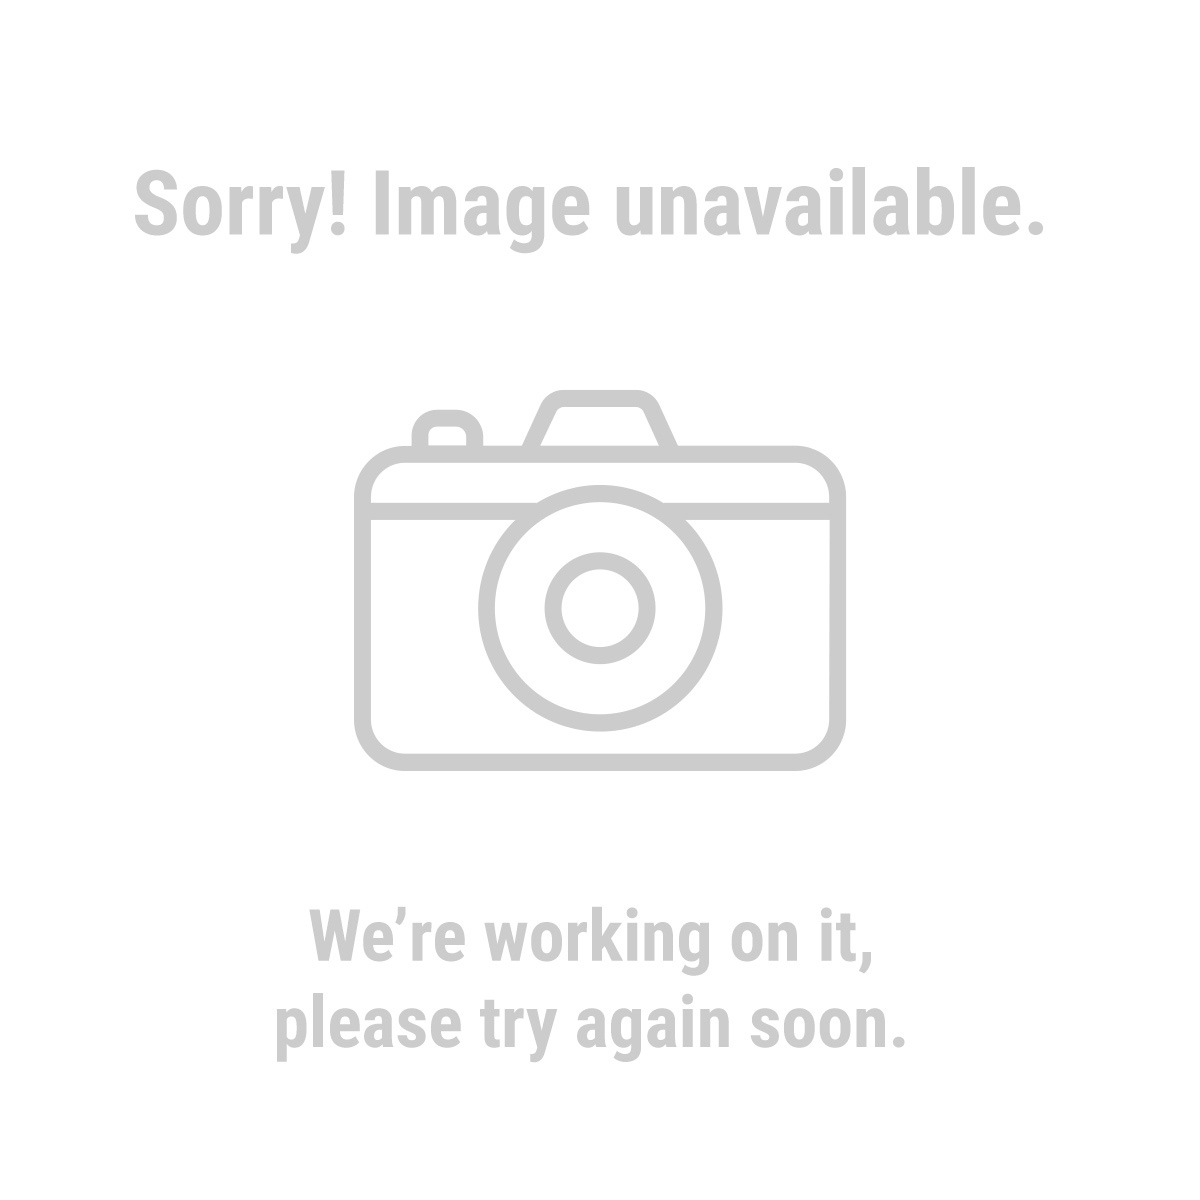 Admiral 62742 7-1/4 in., 24T  Framing Circular Saw Blade 3 Pack